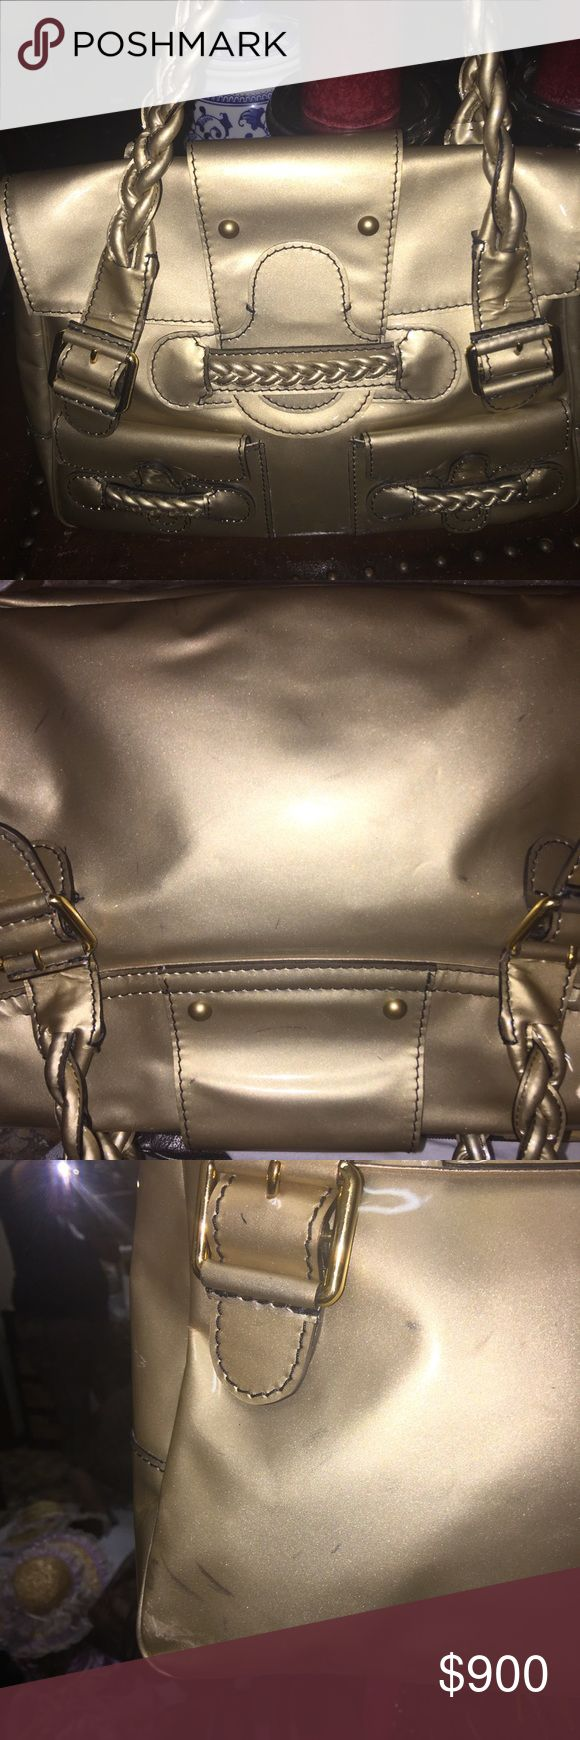 Valentino Gorgeous bag. Has some markings. It's gently used but with markings. Go to pics as shown. Final sale. Looks new inside no cracks on patent. Very soft leather. Gold as seen on Angelina Jolie Valentino Bags Satchels